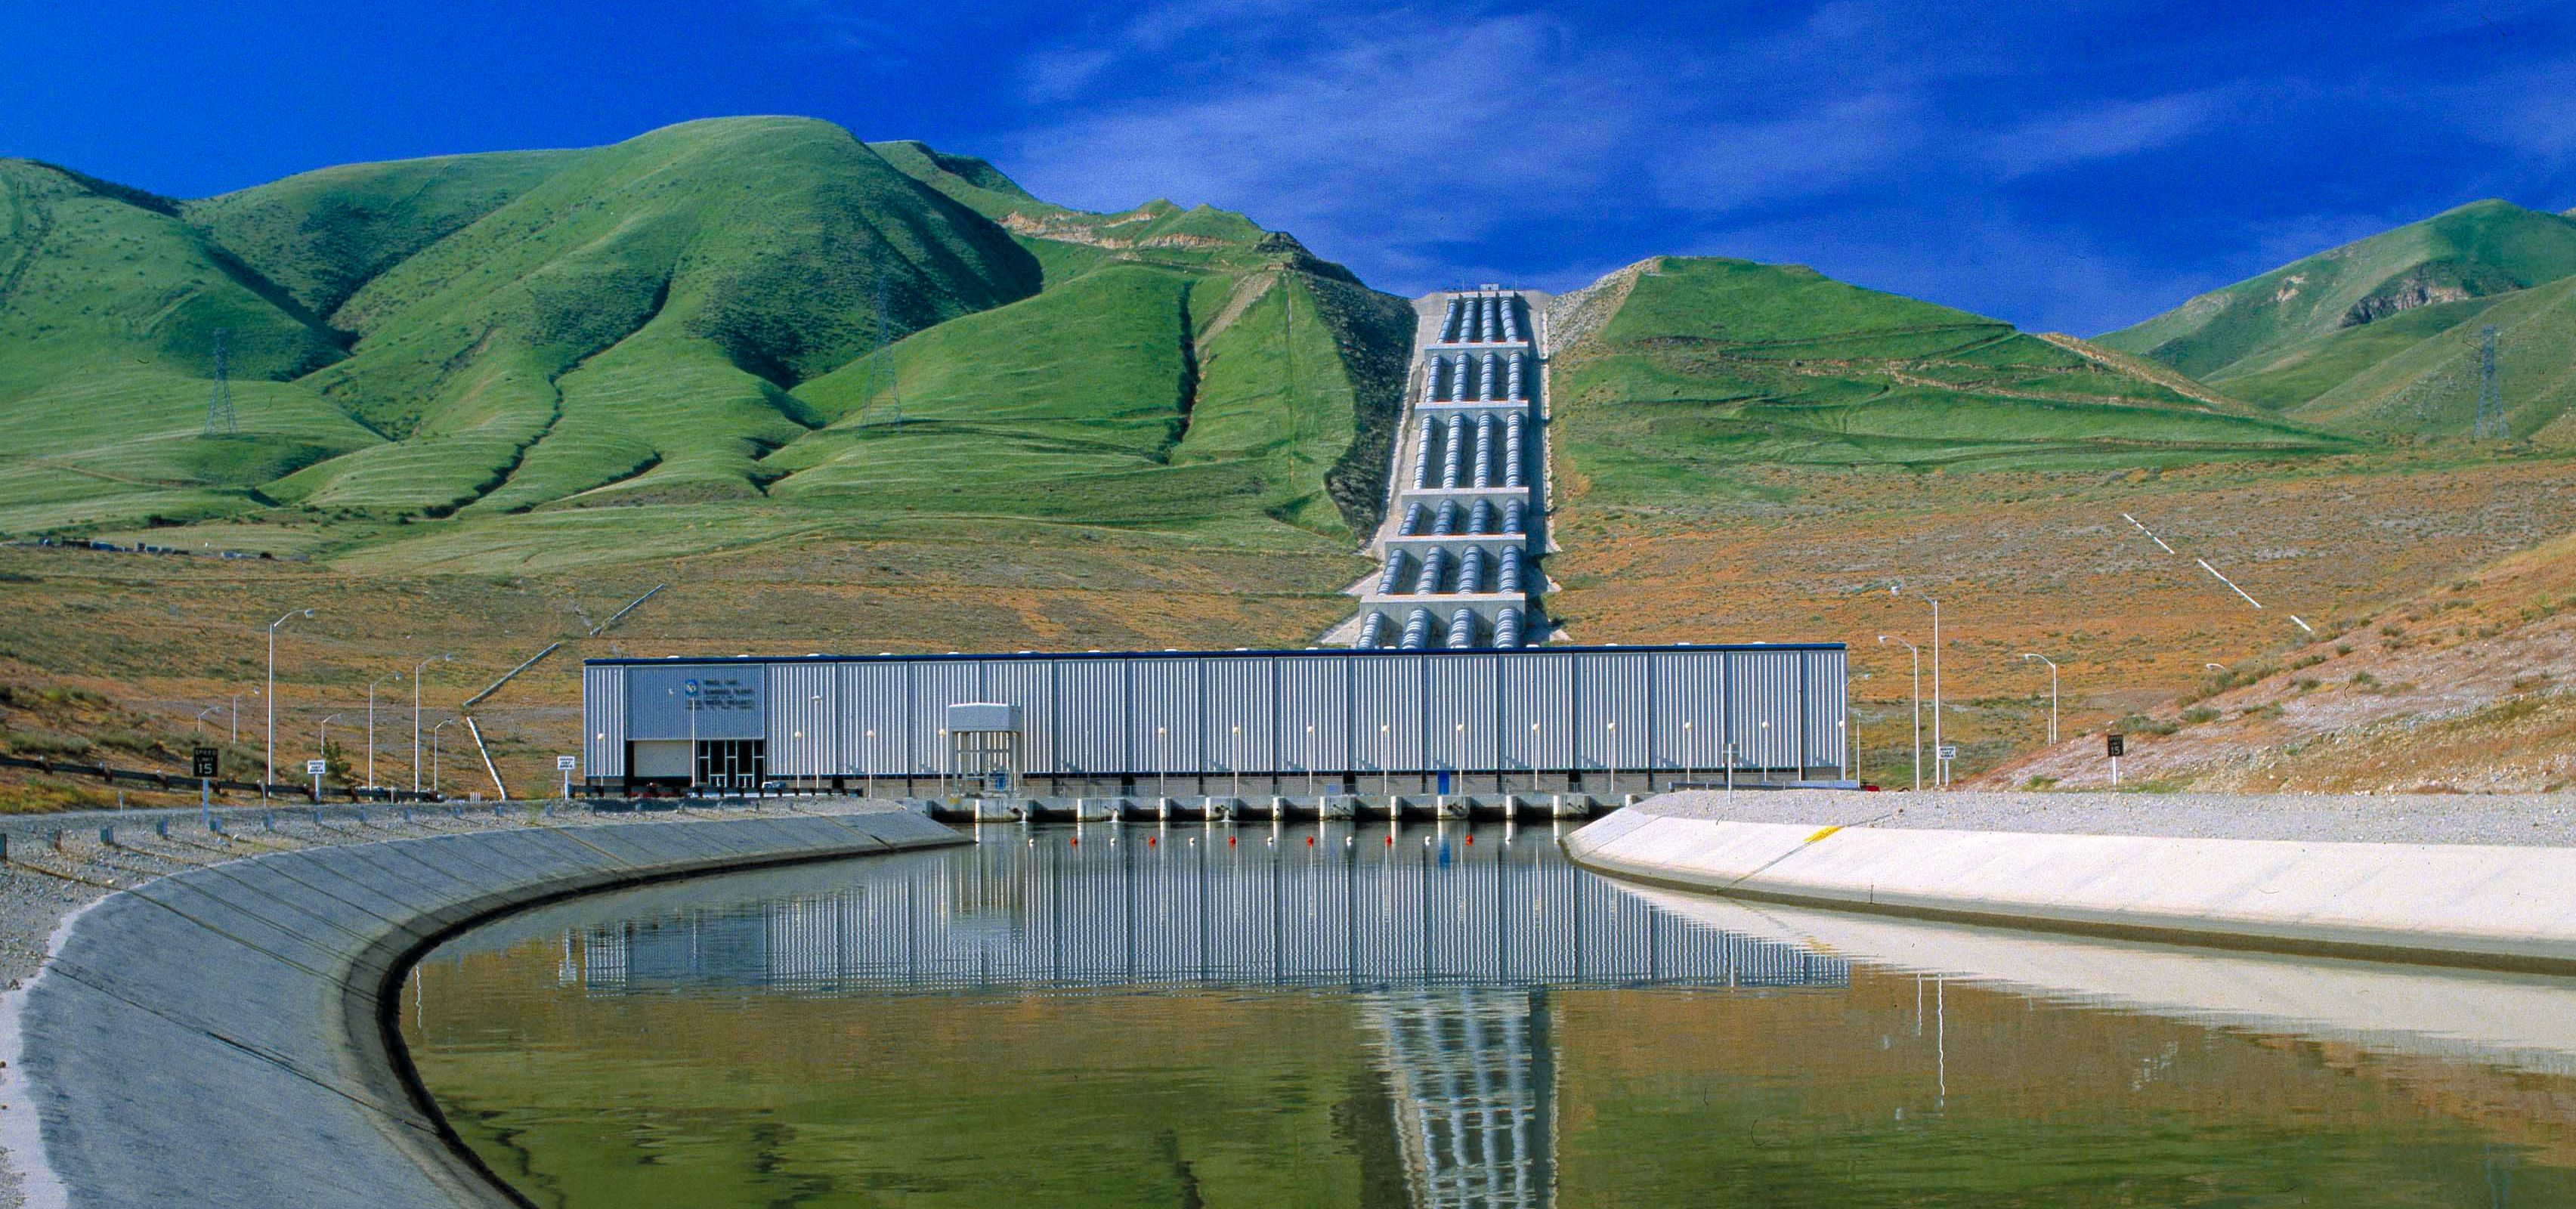 The Ira J. Chrisman Wind Gap Pumping Plant is part of the California Aqueduct within the Calif. State Water Project, located just west of Interstate Highway 5 within Kern County in Southern Calif.